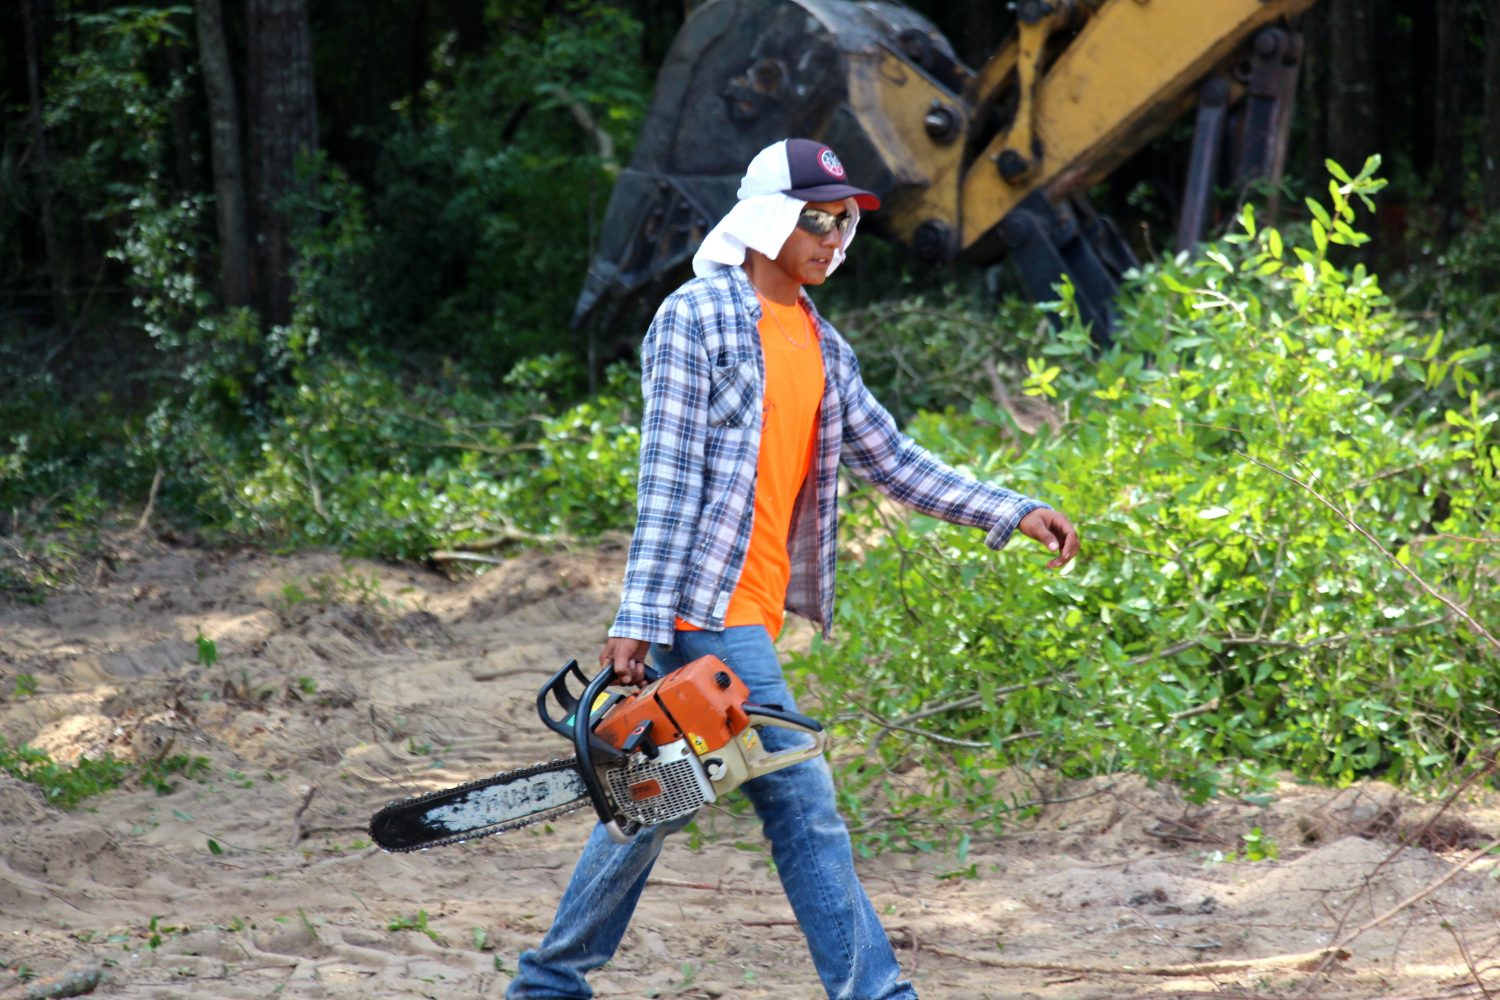 A worker cuts large limbs and works the machinery as Tioga continues to clear land. Town of Tioga has about 300 acres to build on during the next 15 to 20 years, said Greta Rice, director of sales and marketing for Tioga Realty.